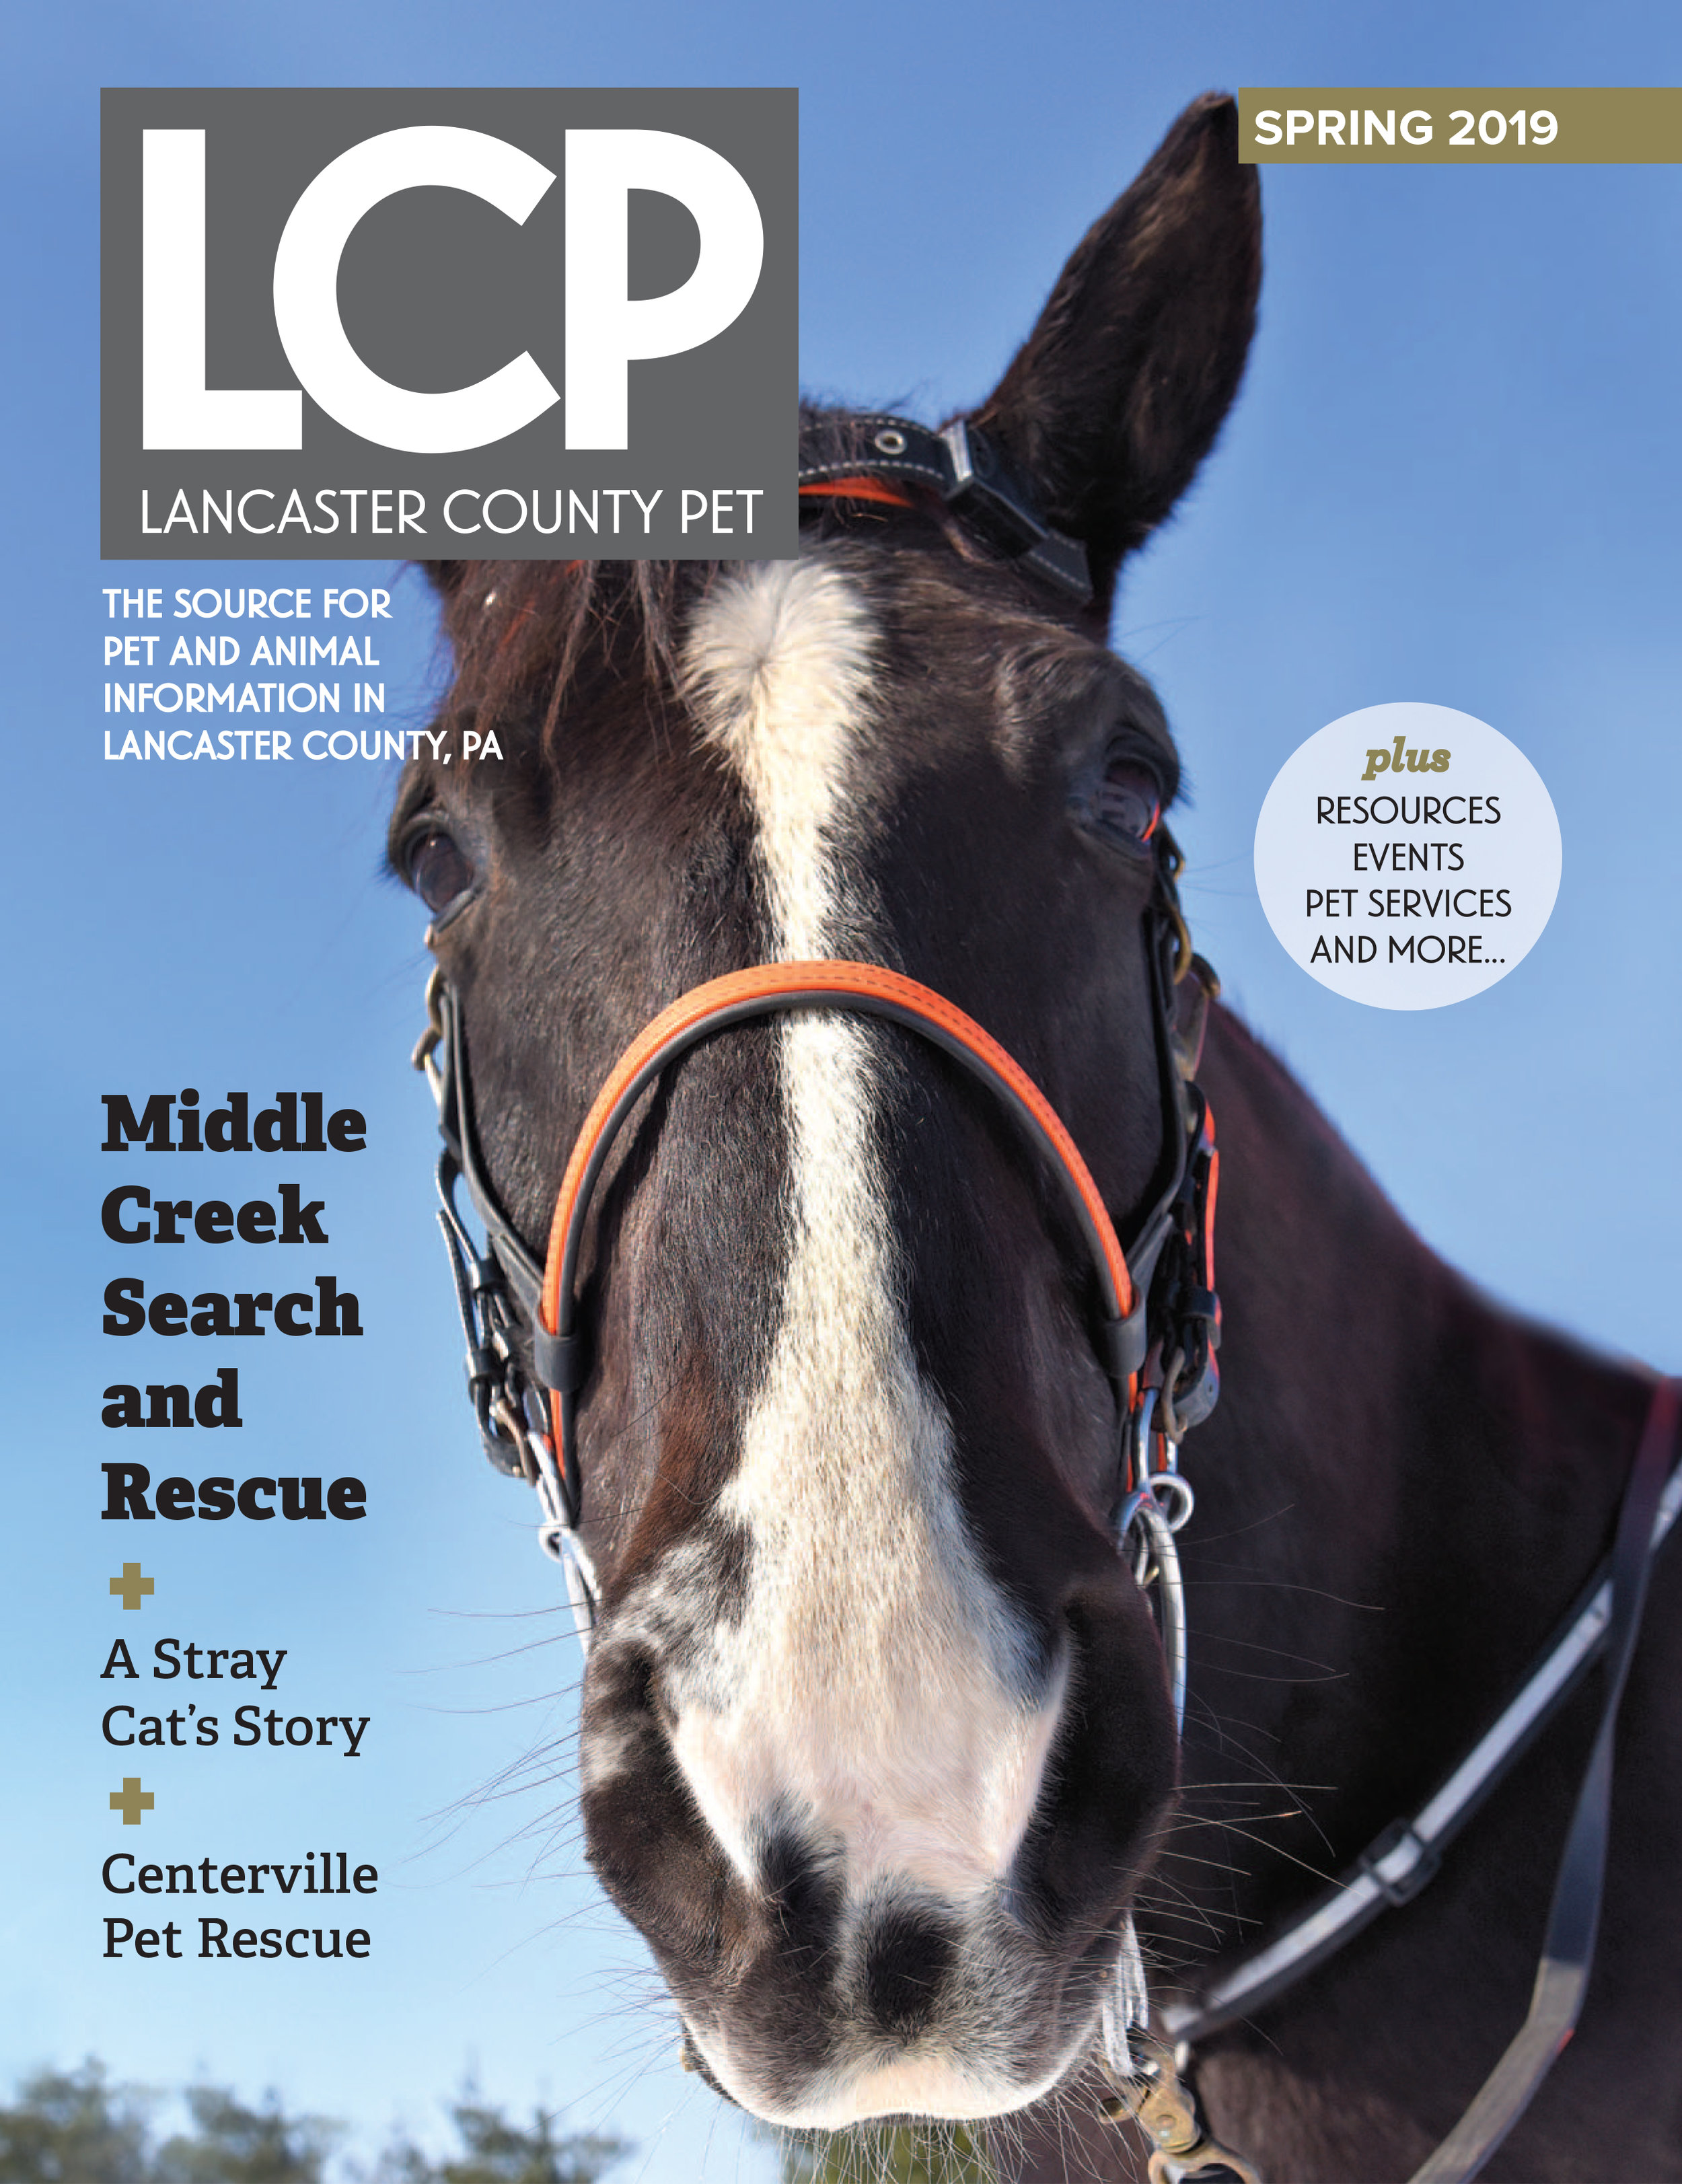 Winter 2019 Issue. Click on image to view.